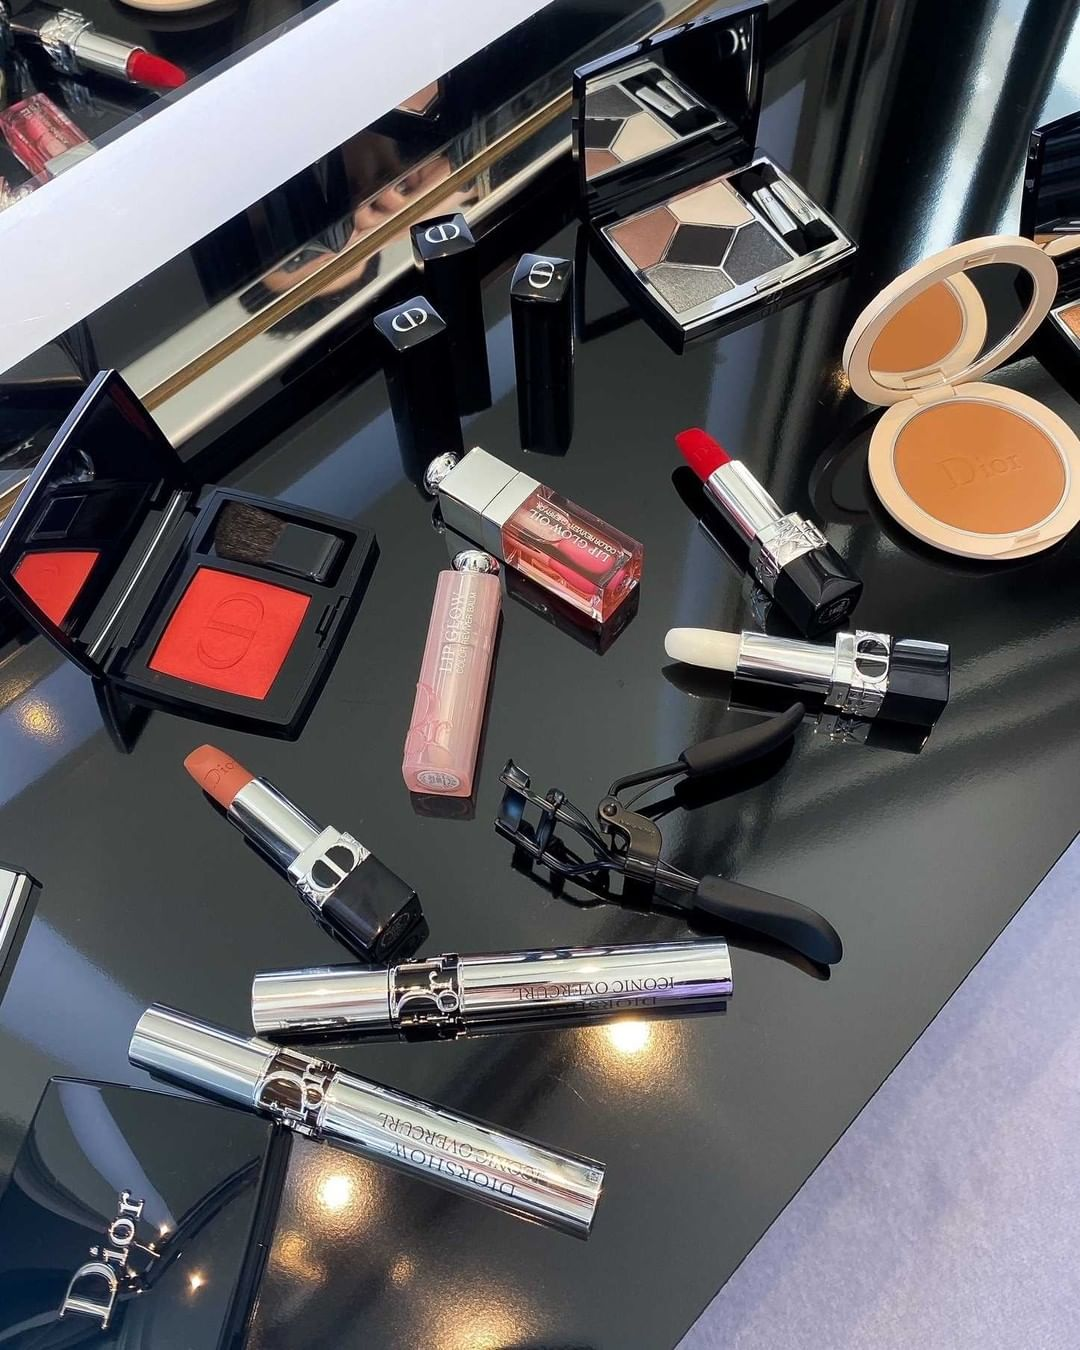 Dior beauty- Best beauty brands to invest in